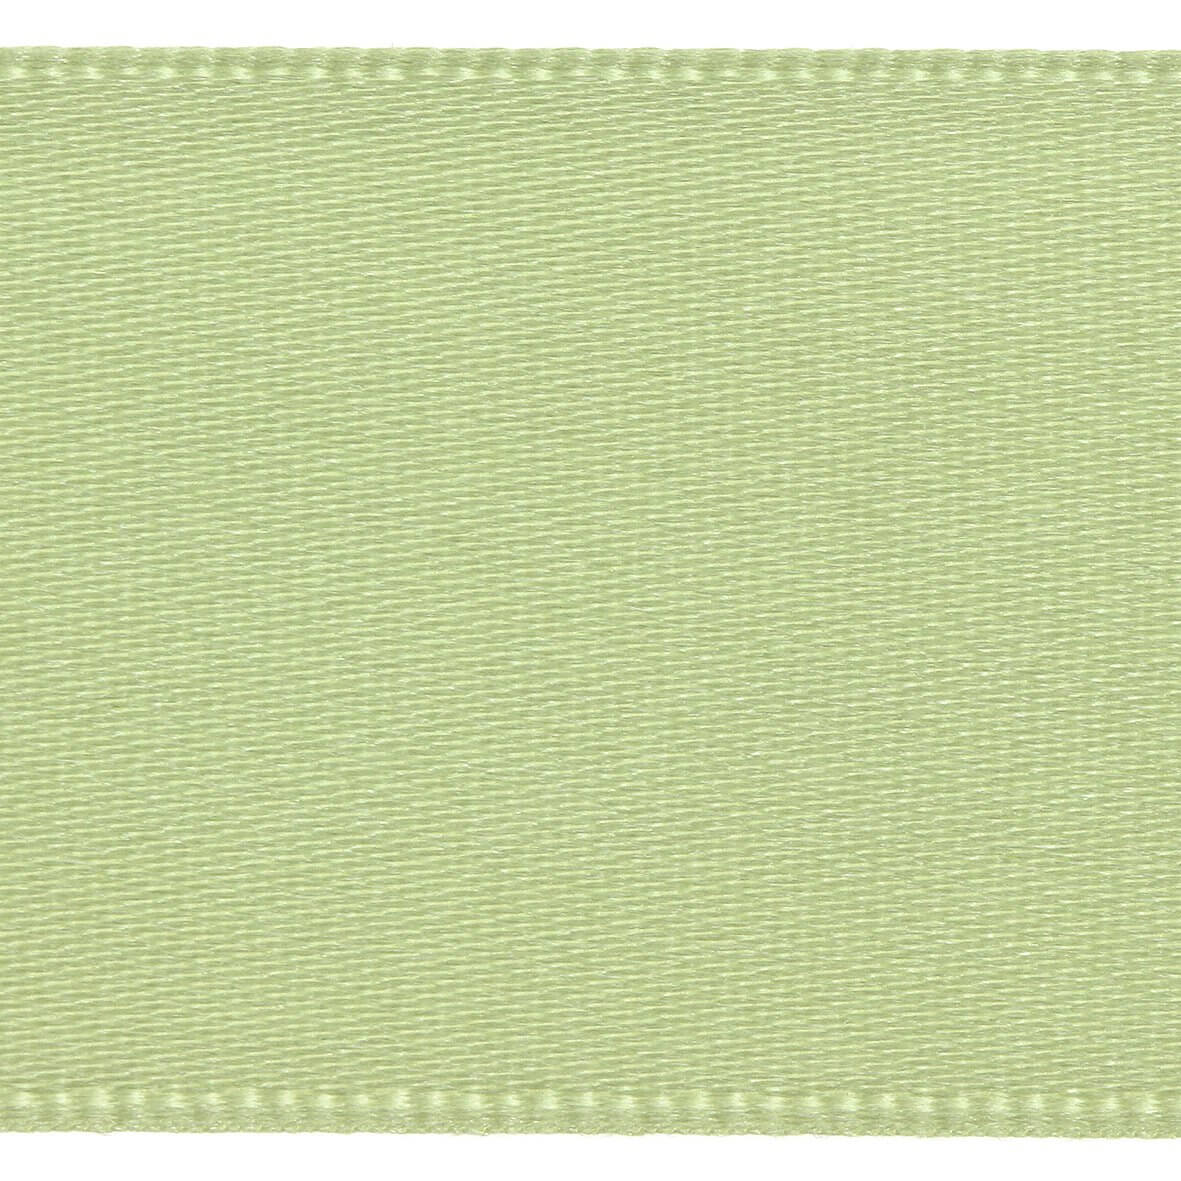 25mm Berisfords Satin Ribbon - Lime Colour 6